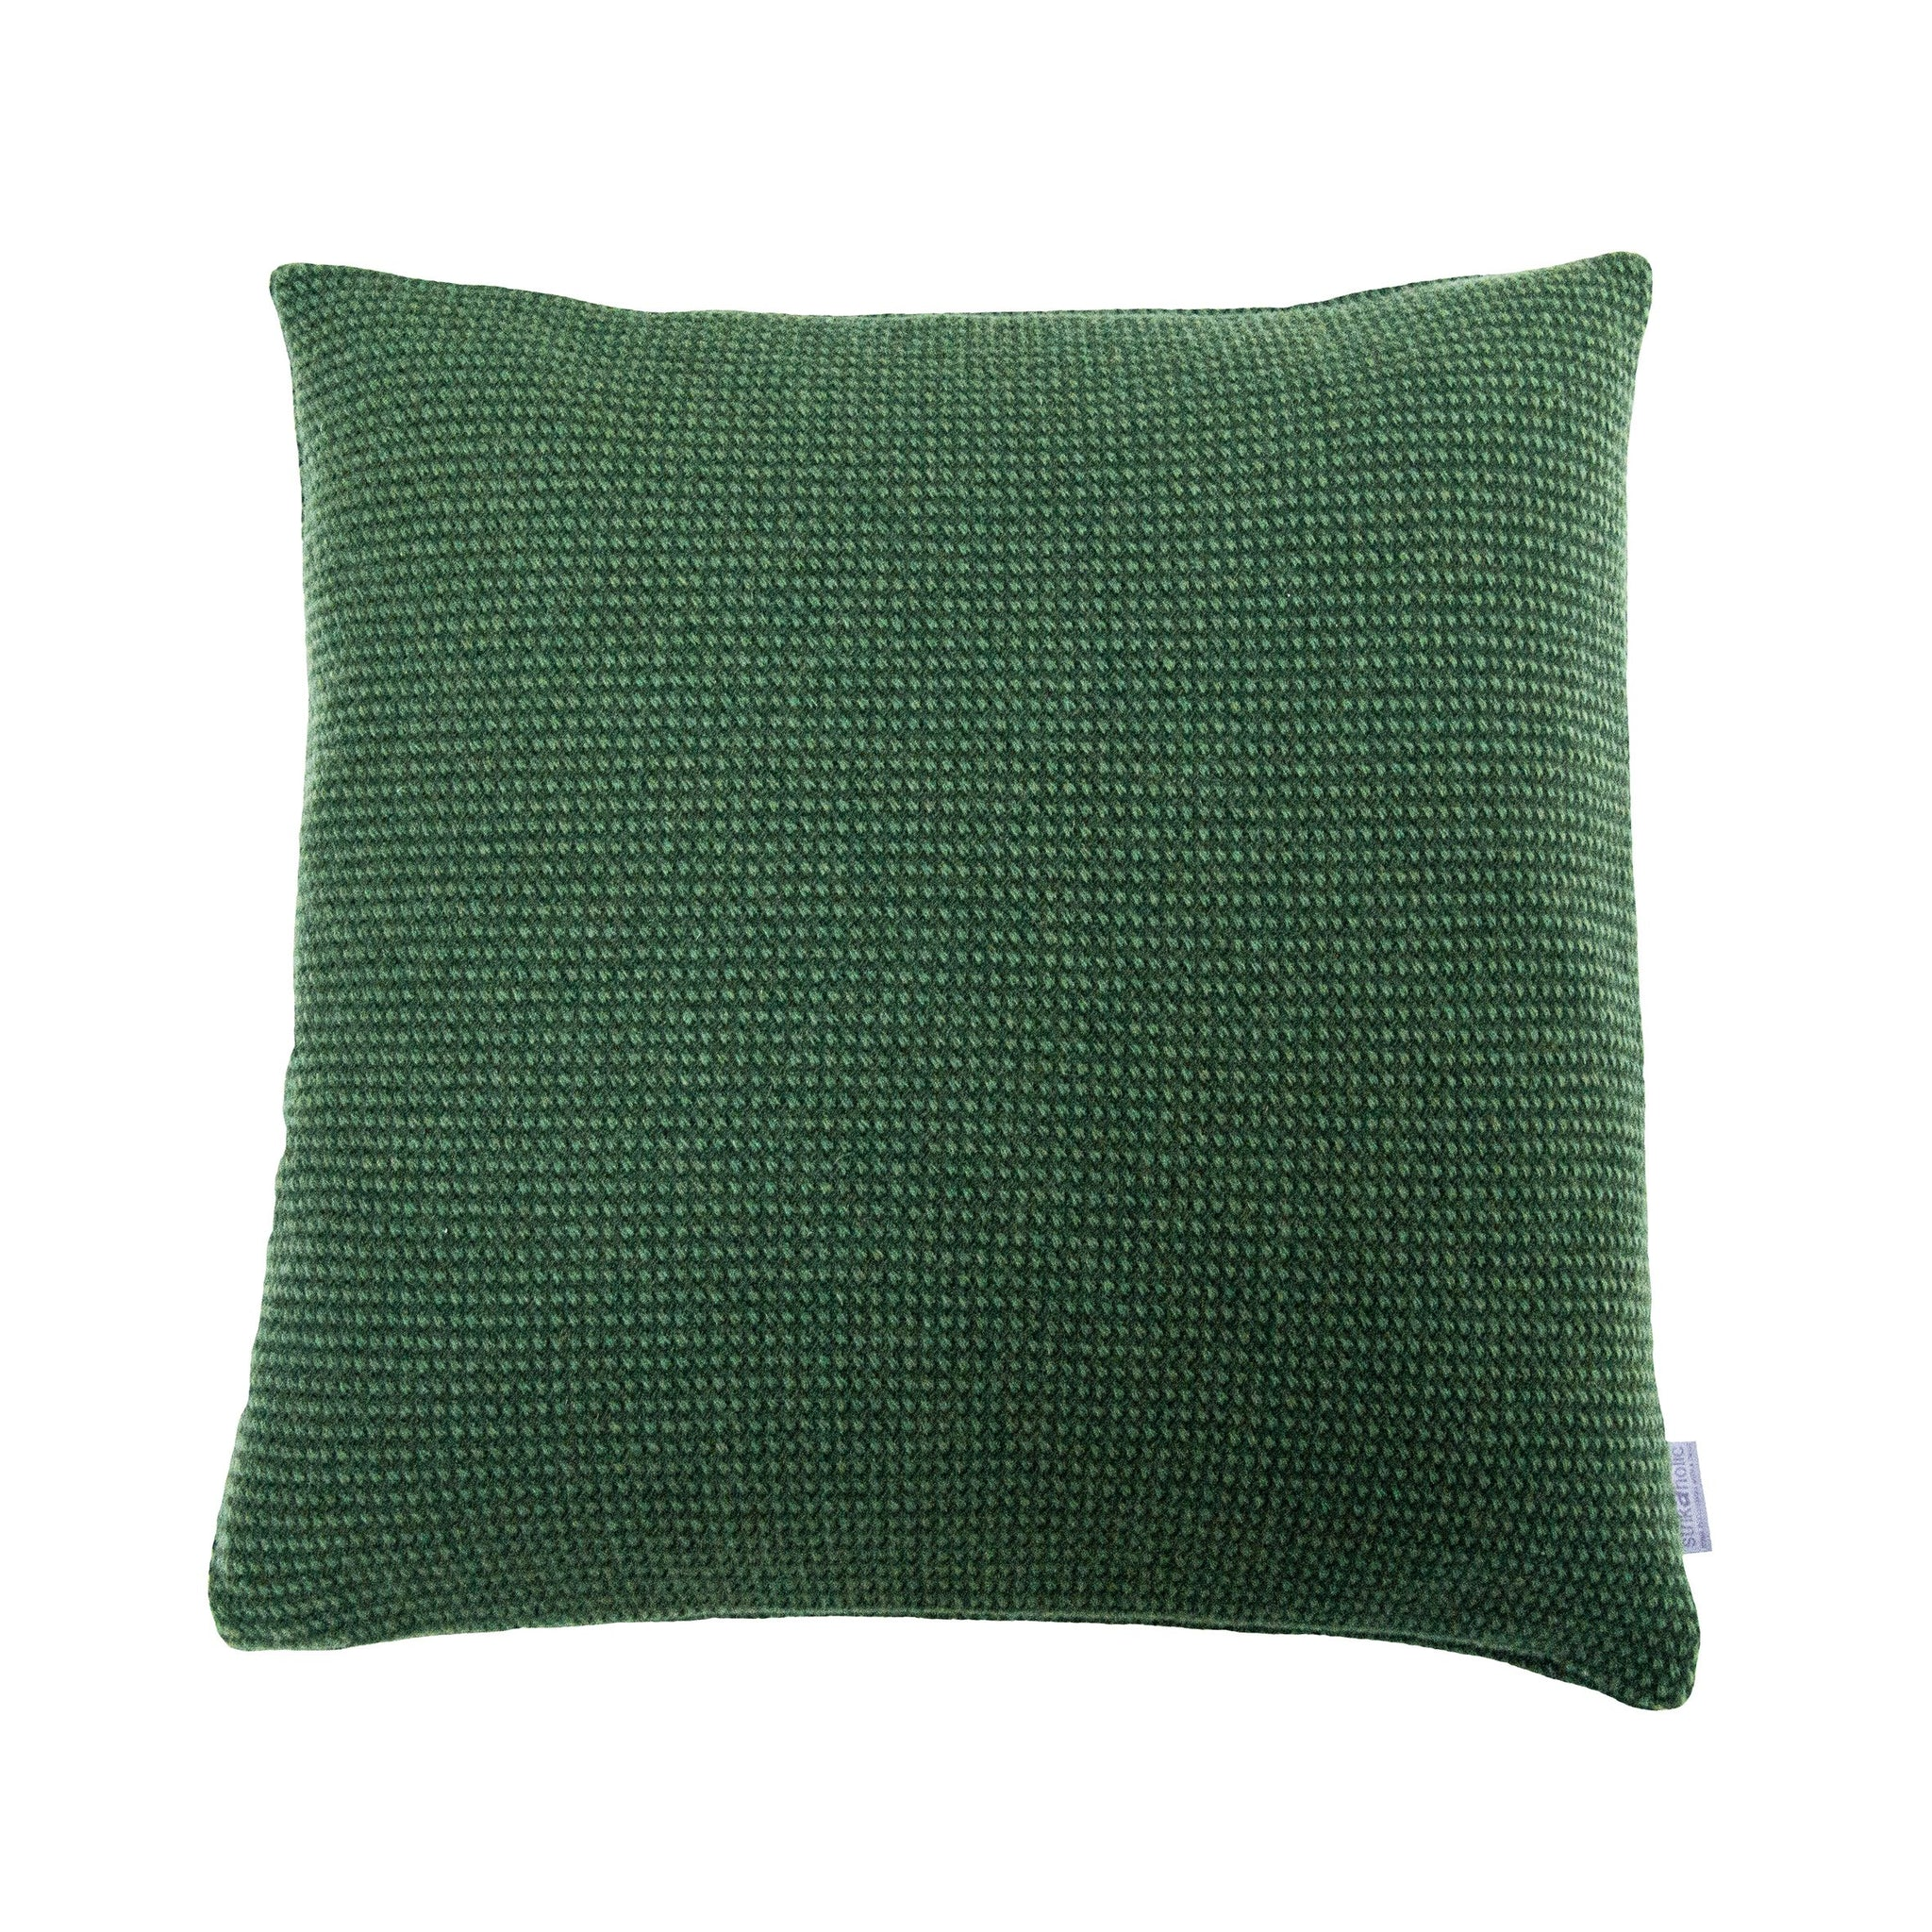 Basket Weave cushion, grass